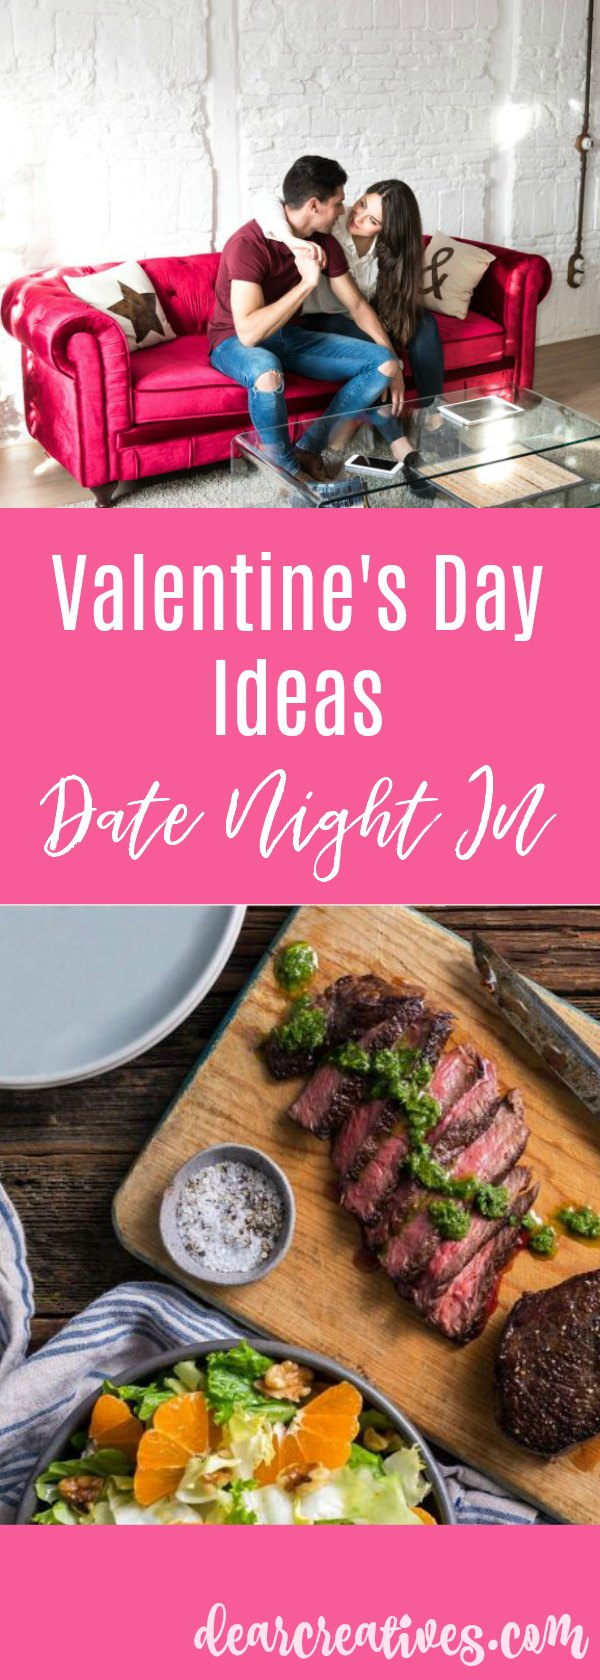 Plan a Valentine's Day Date Night at Home + Gift Ideas to Snuggle up to Under $20